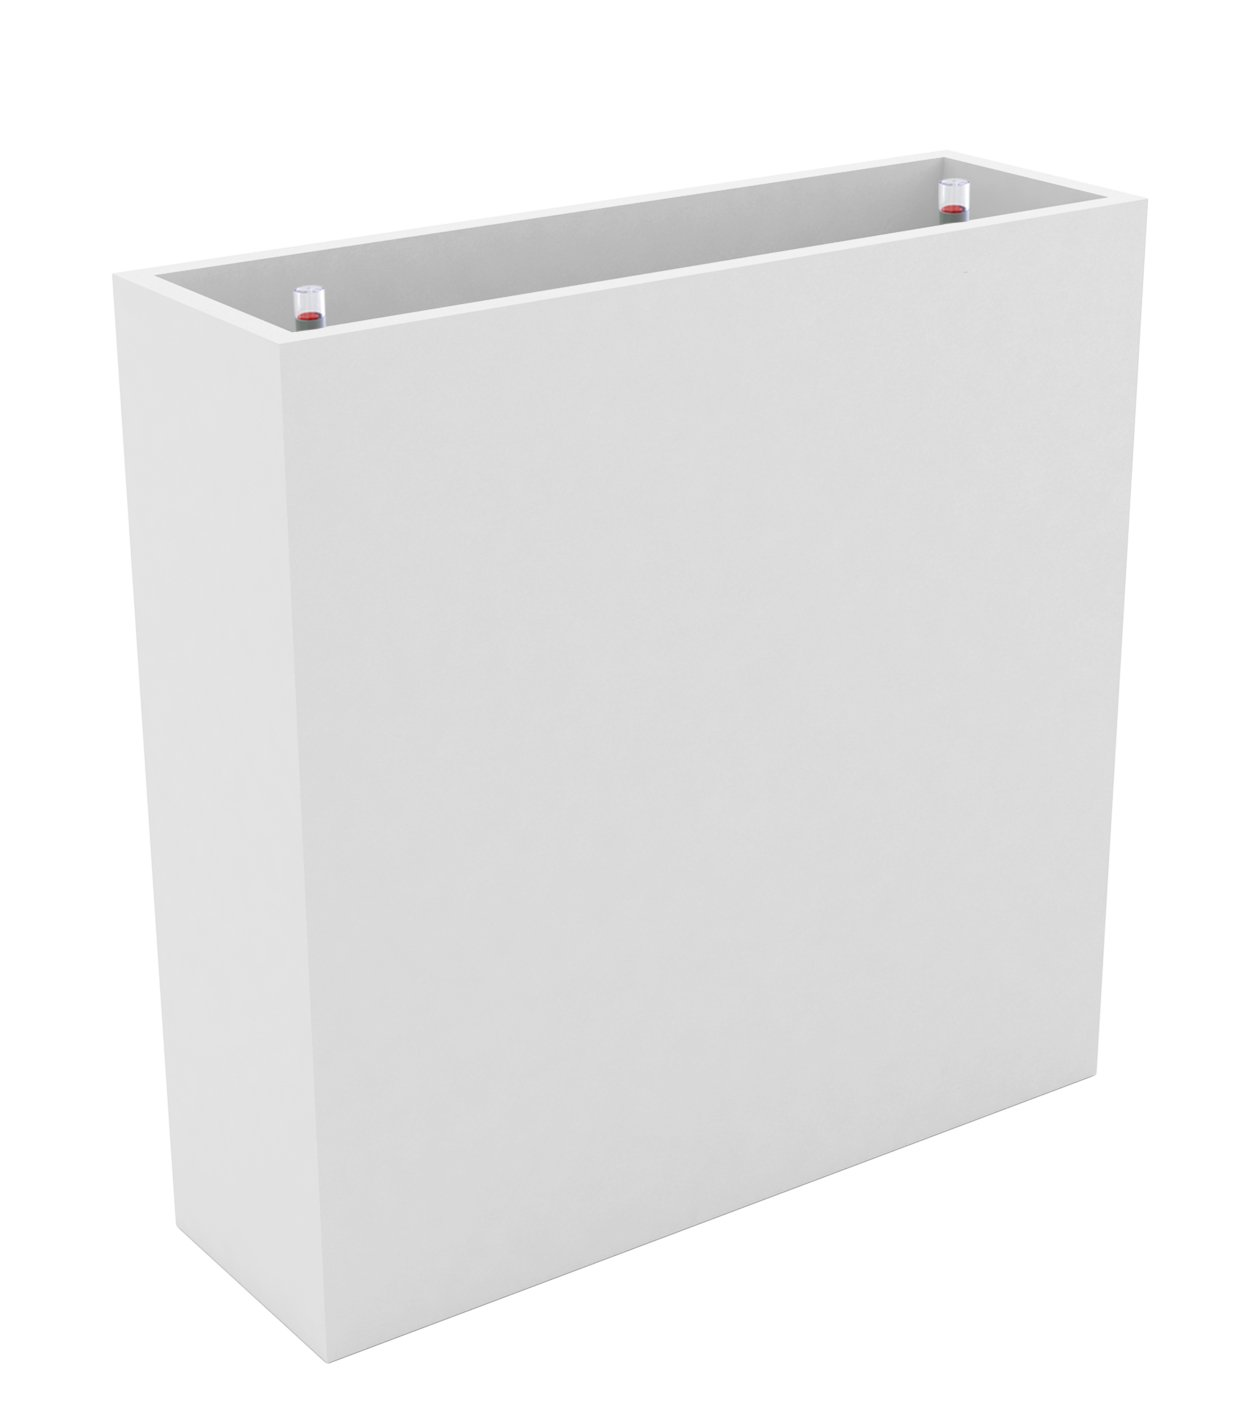 VONDOM Self Watering Wall Planter, 11-3/4 by 47-1/4 by 31-1/2-Inch, White by Vondom